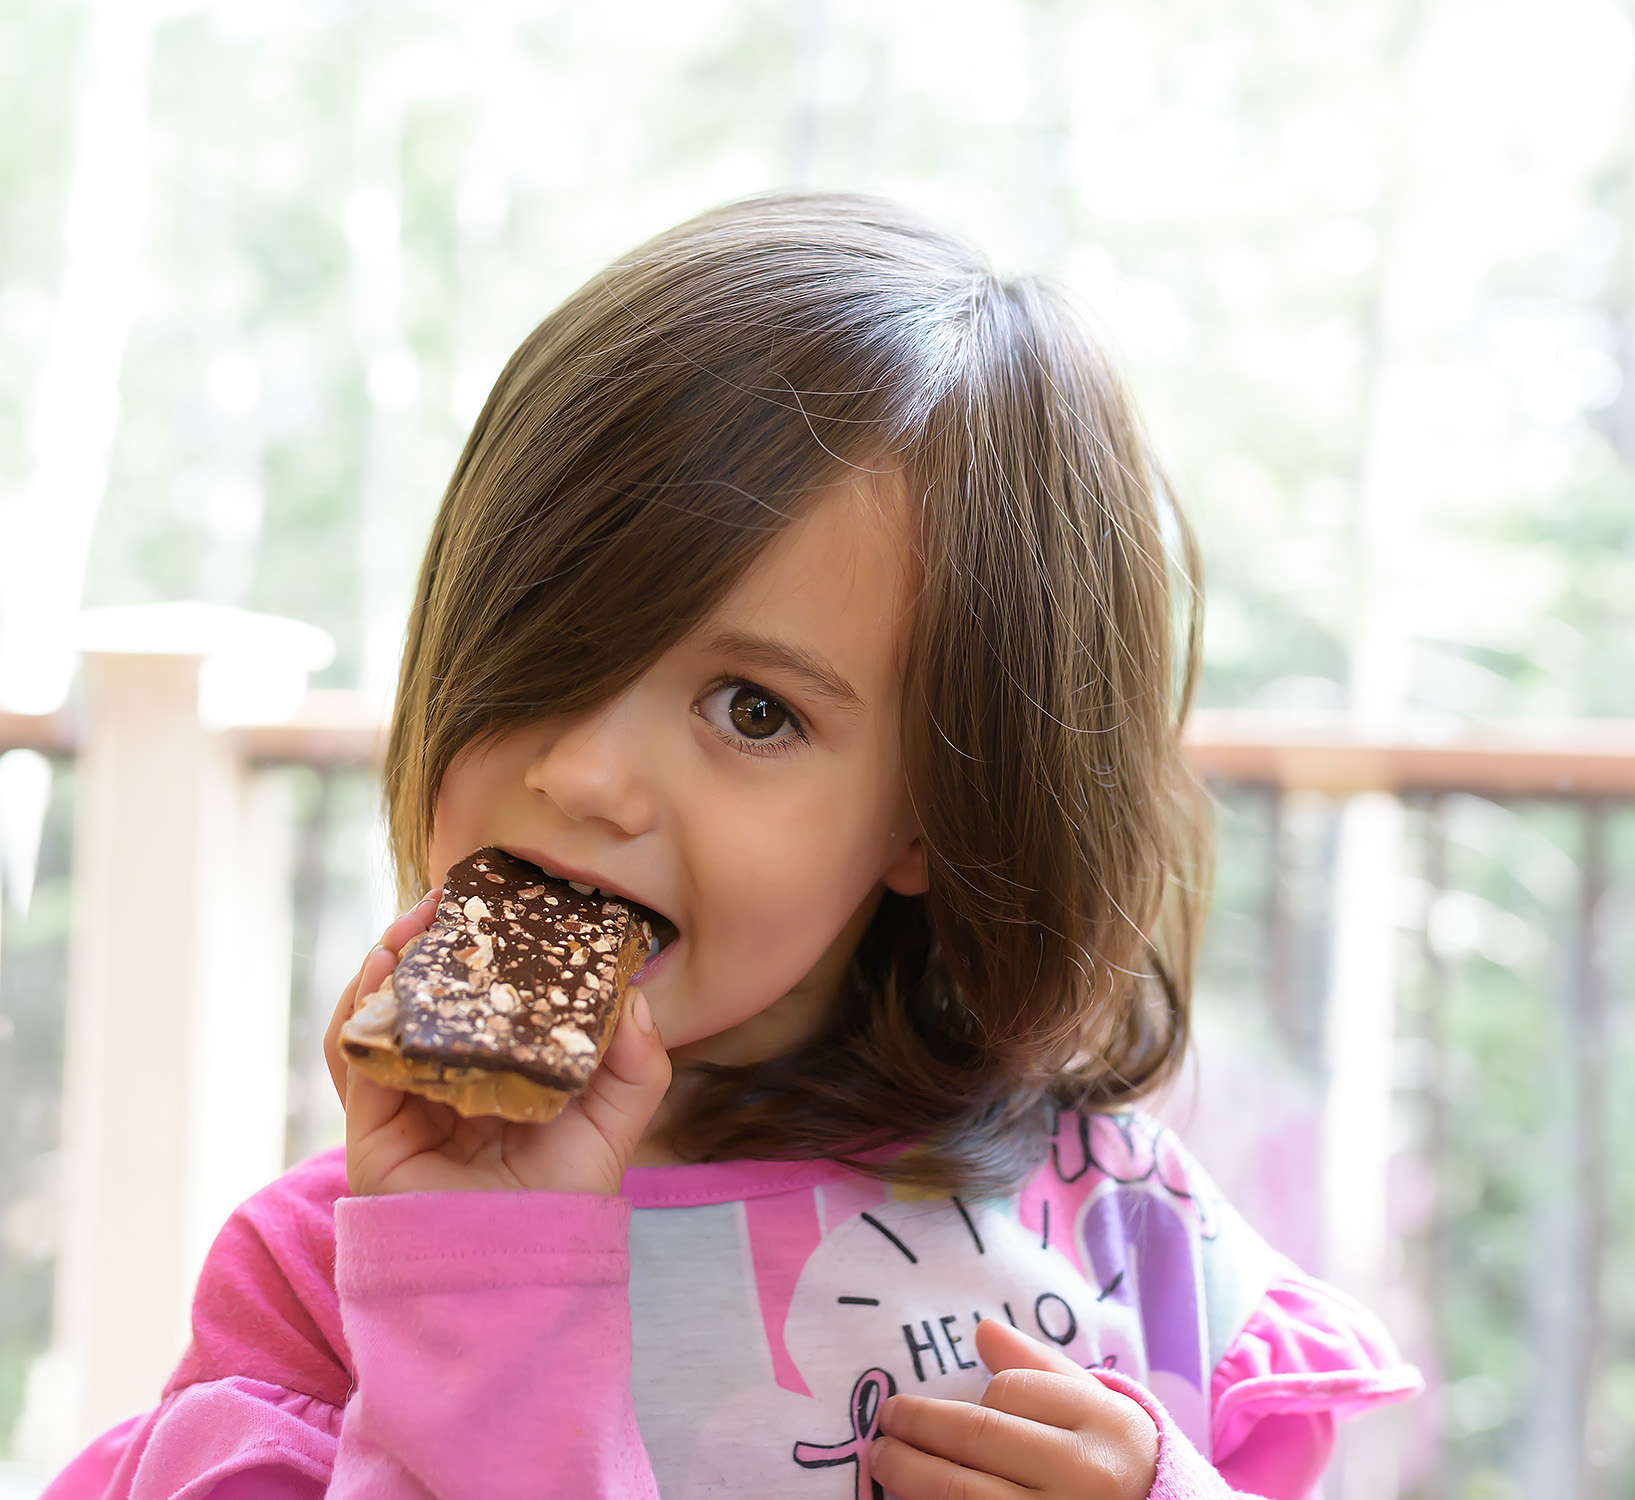 Child Enjoying Toffee.jpg